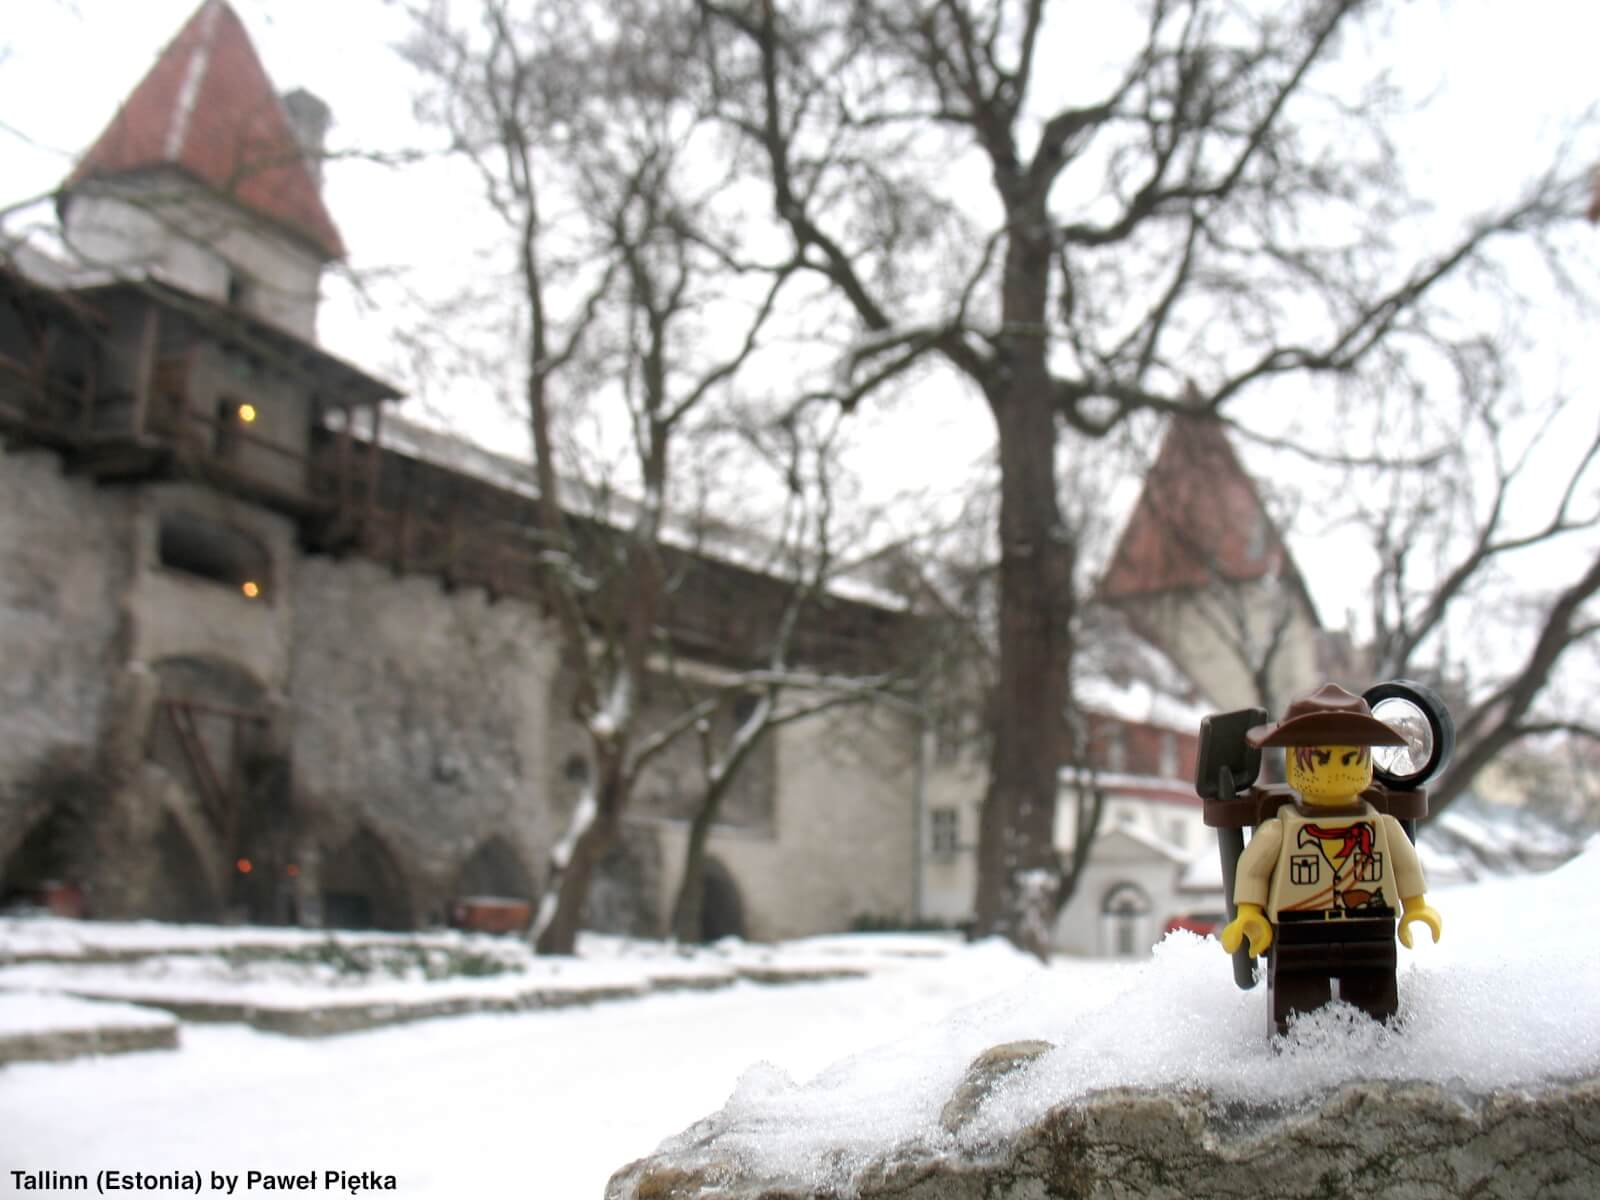 Tallinn (Estonia) - City wall